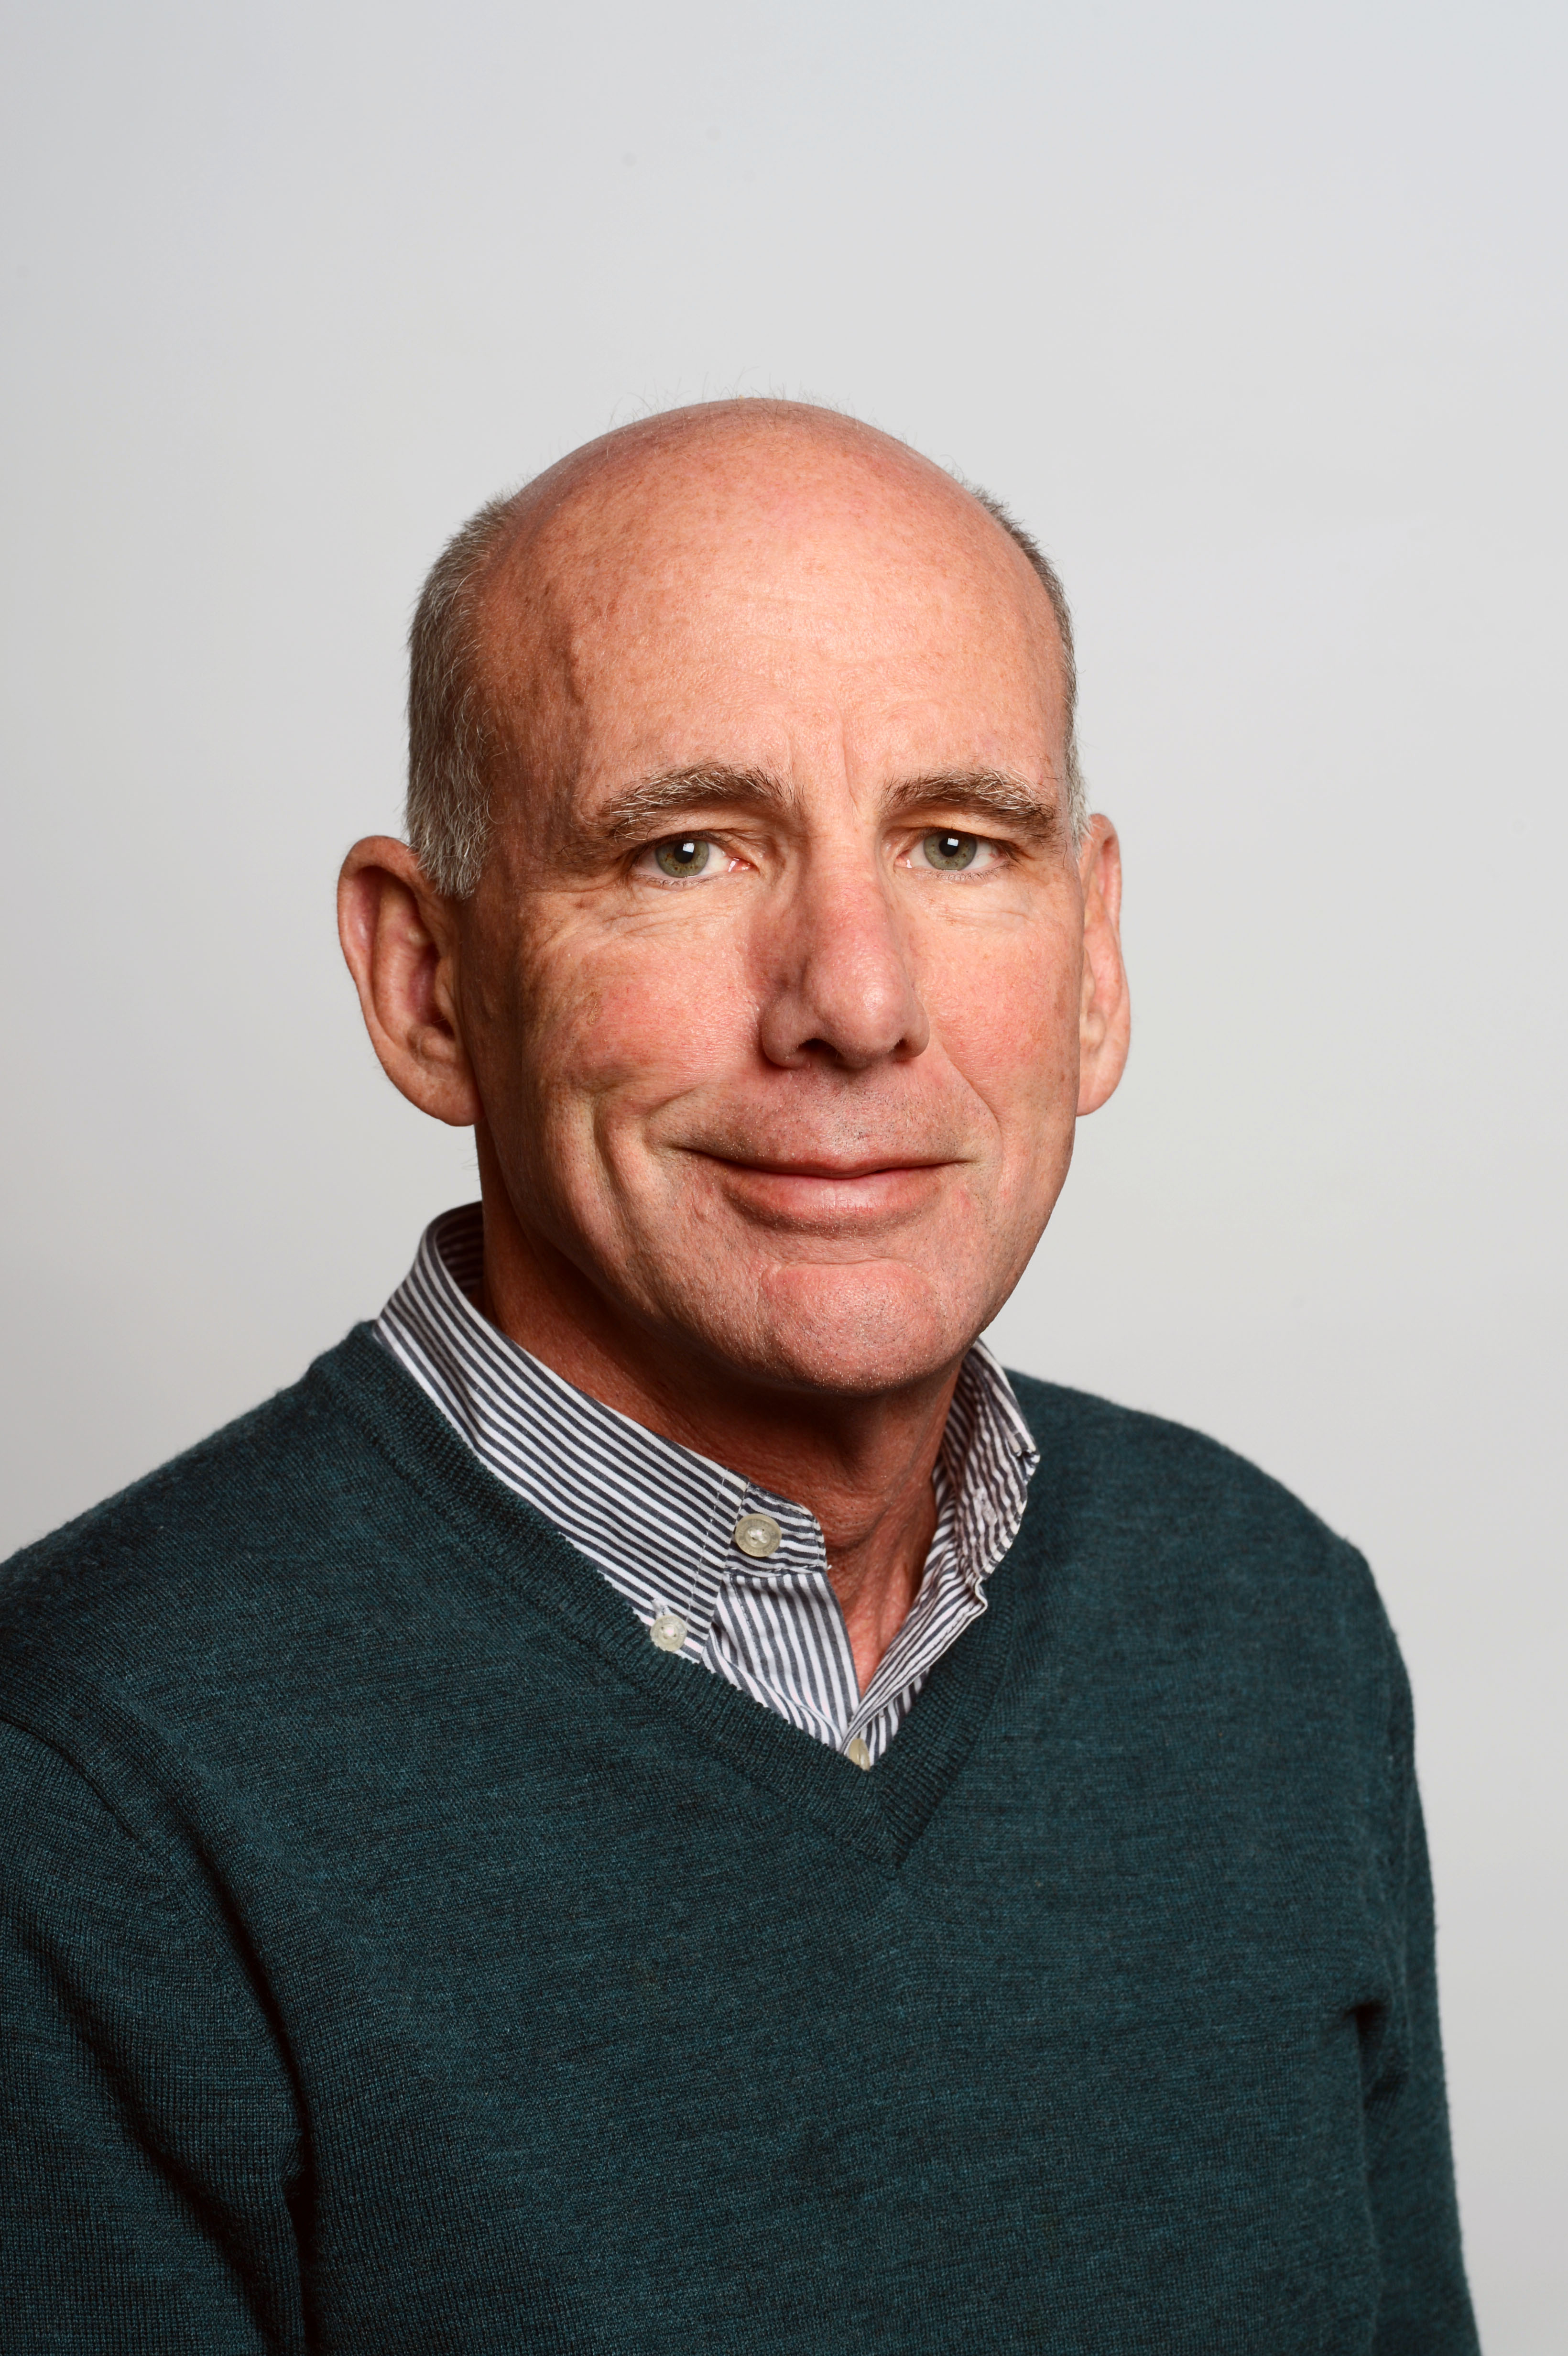 Professor Chris O'Neill